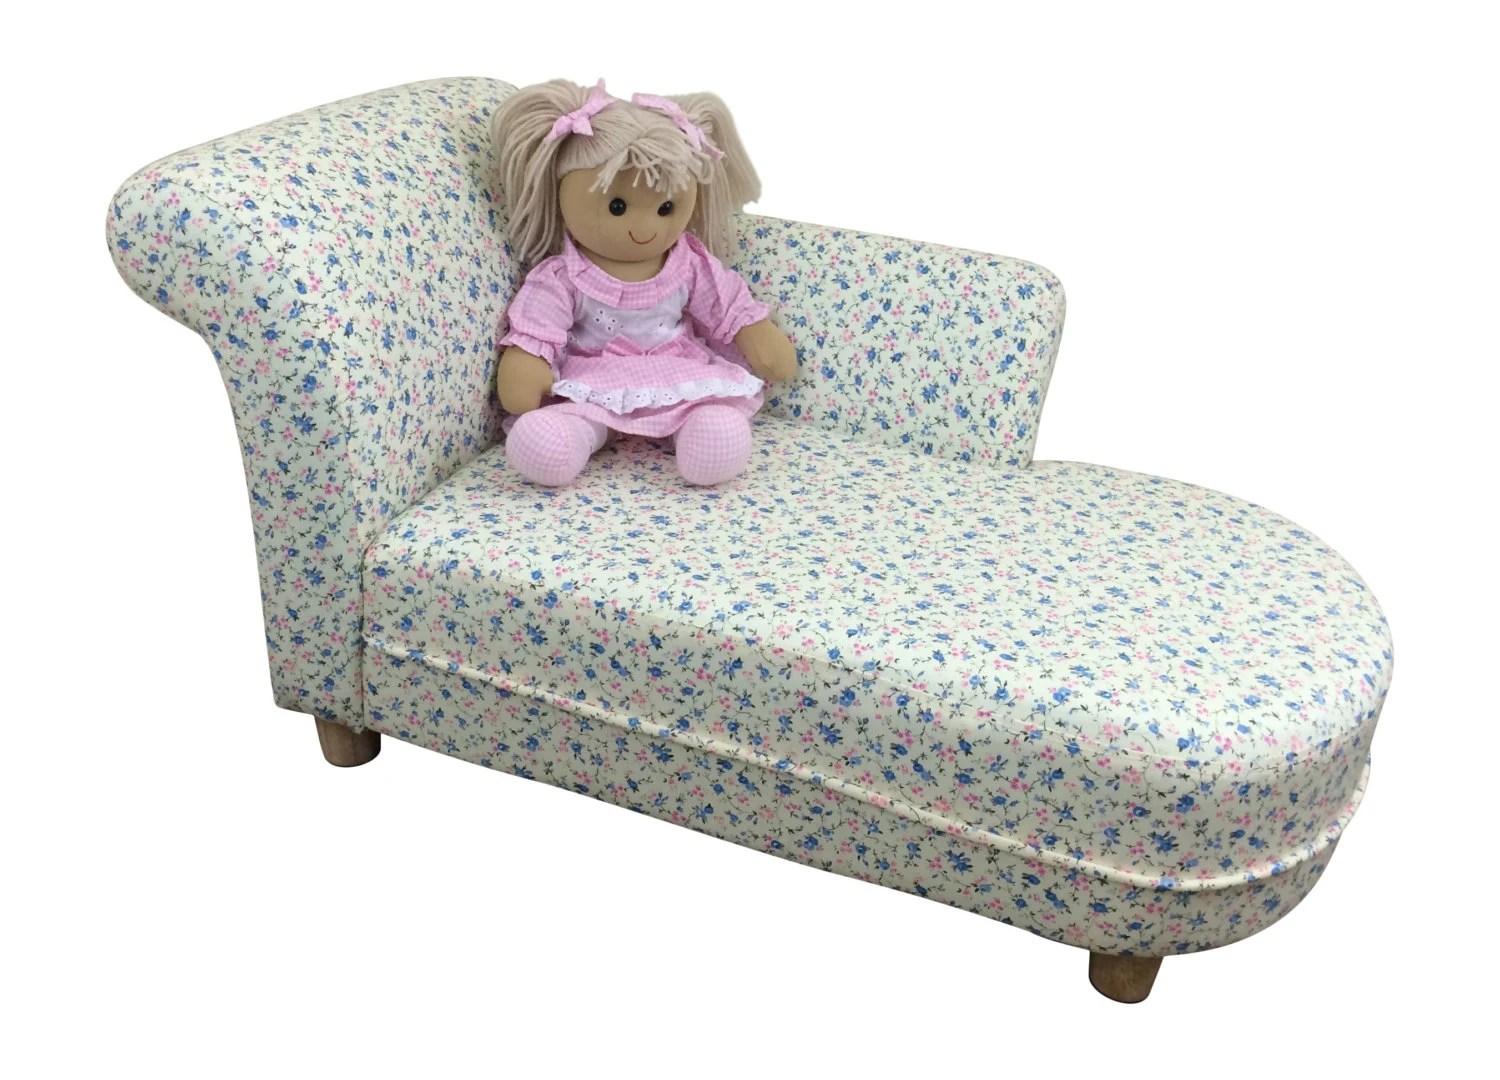 Kids Chaise Lounge Chair Kids Toddler Children 39s Chaise Lounge Sofa Chair Floral